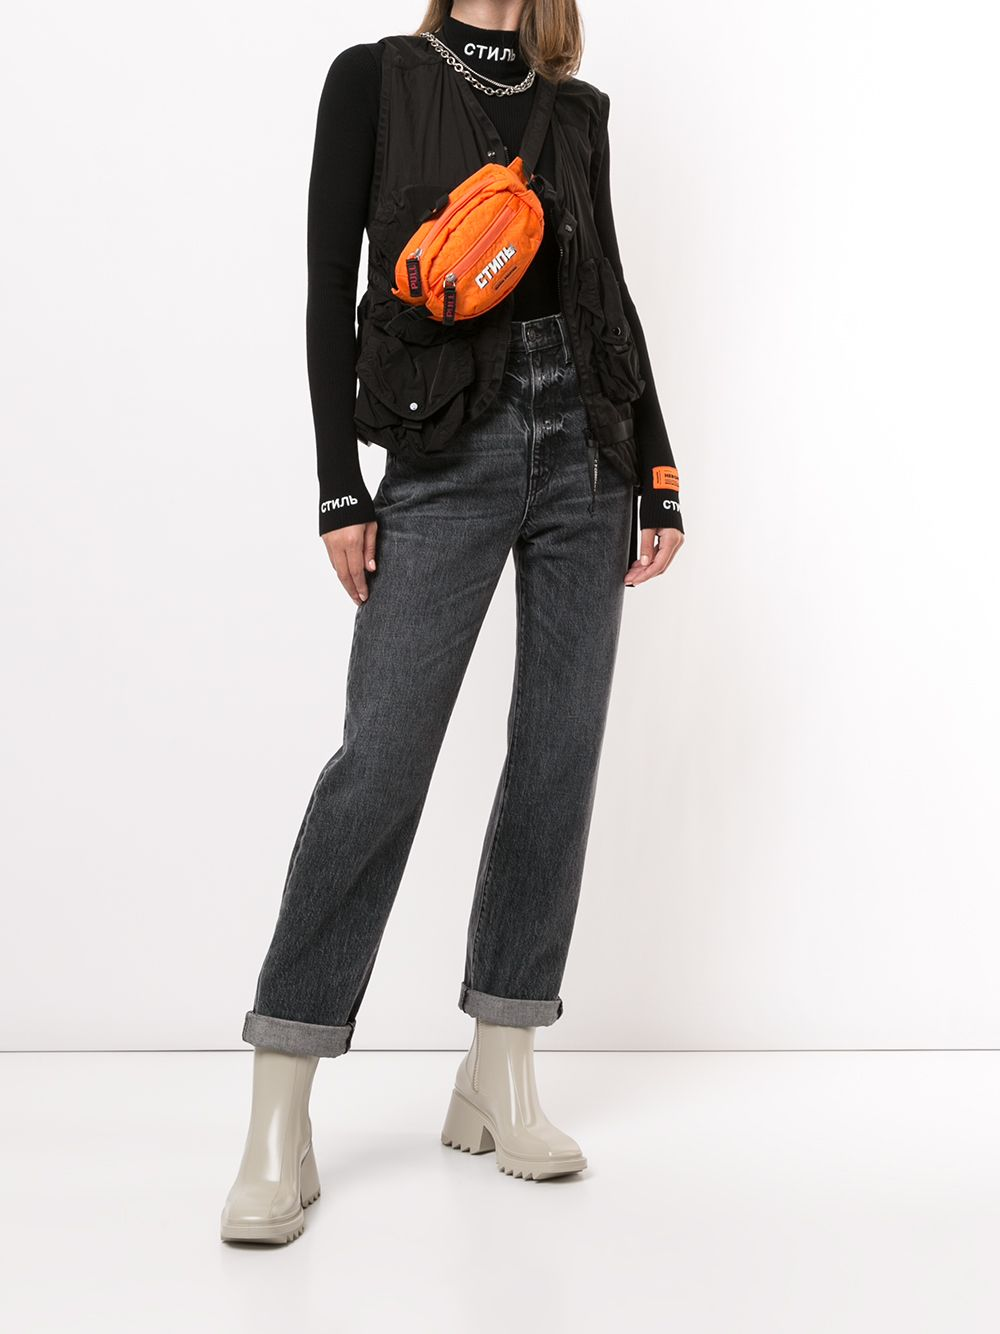 HERON PRESTON WOMEN KNIT CTNMB ROLL NECK TOP